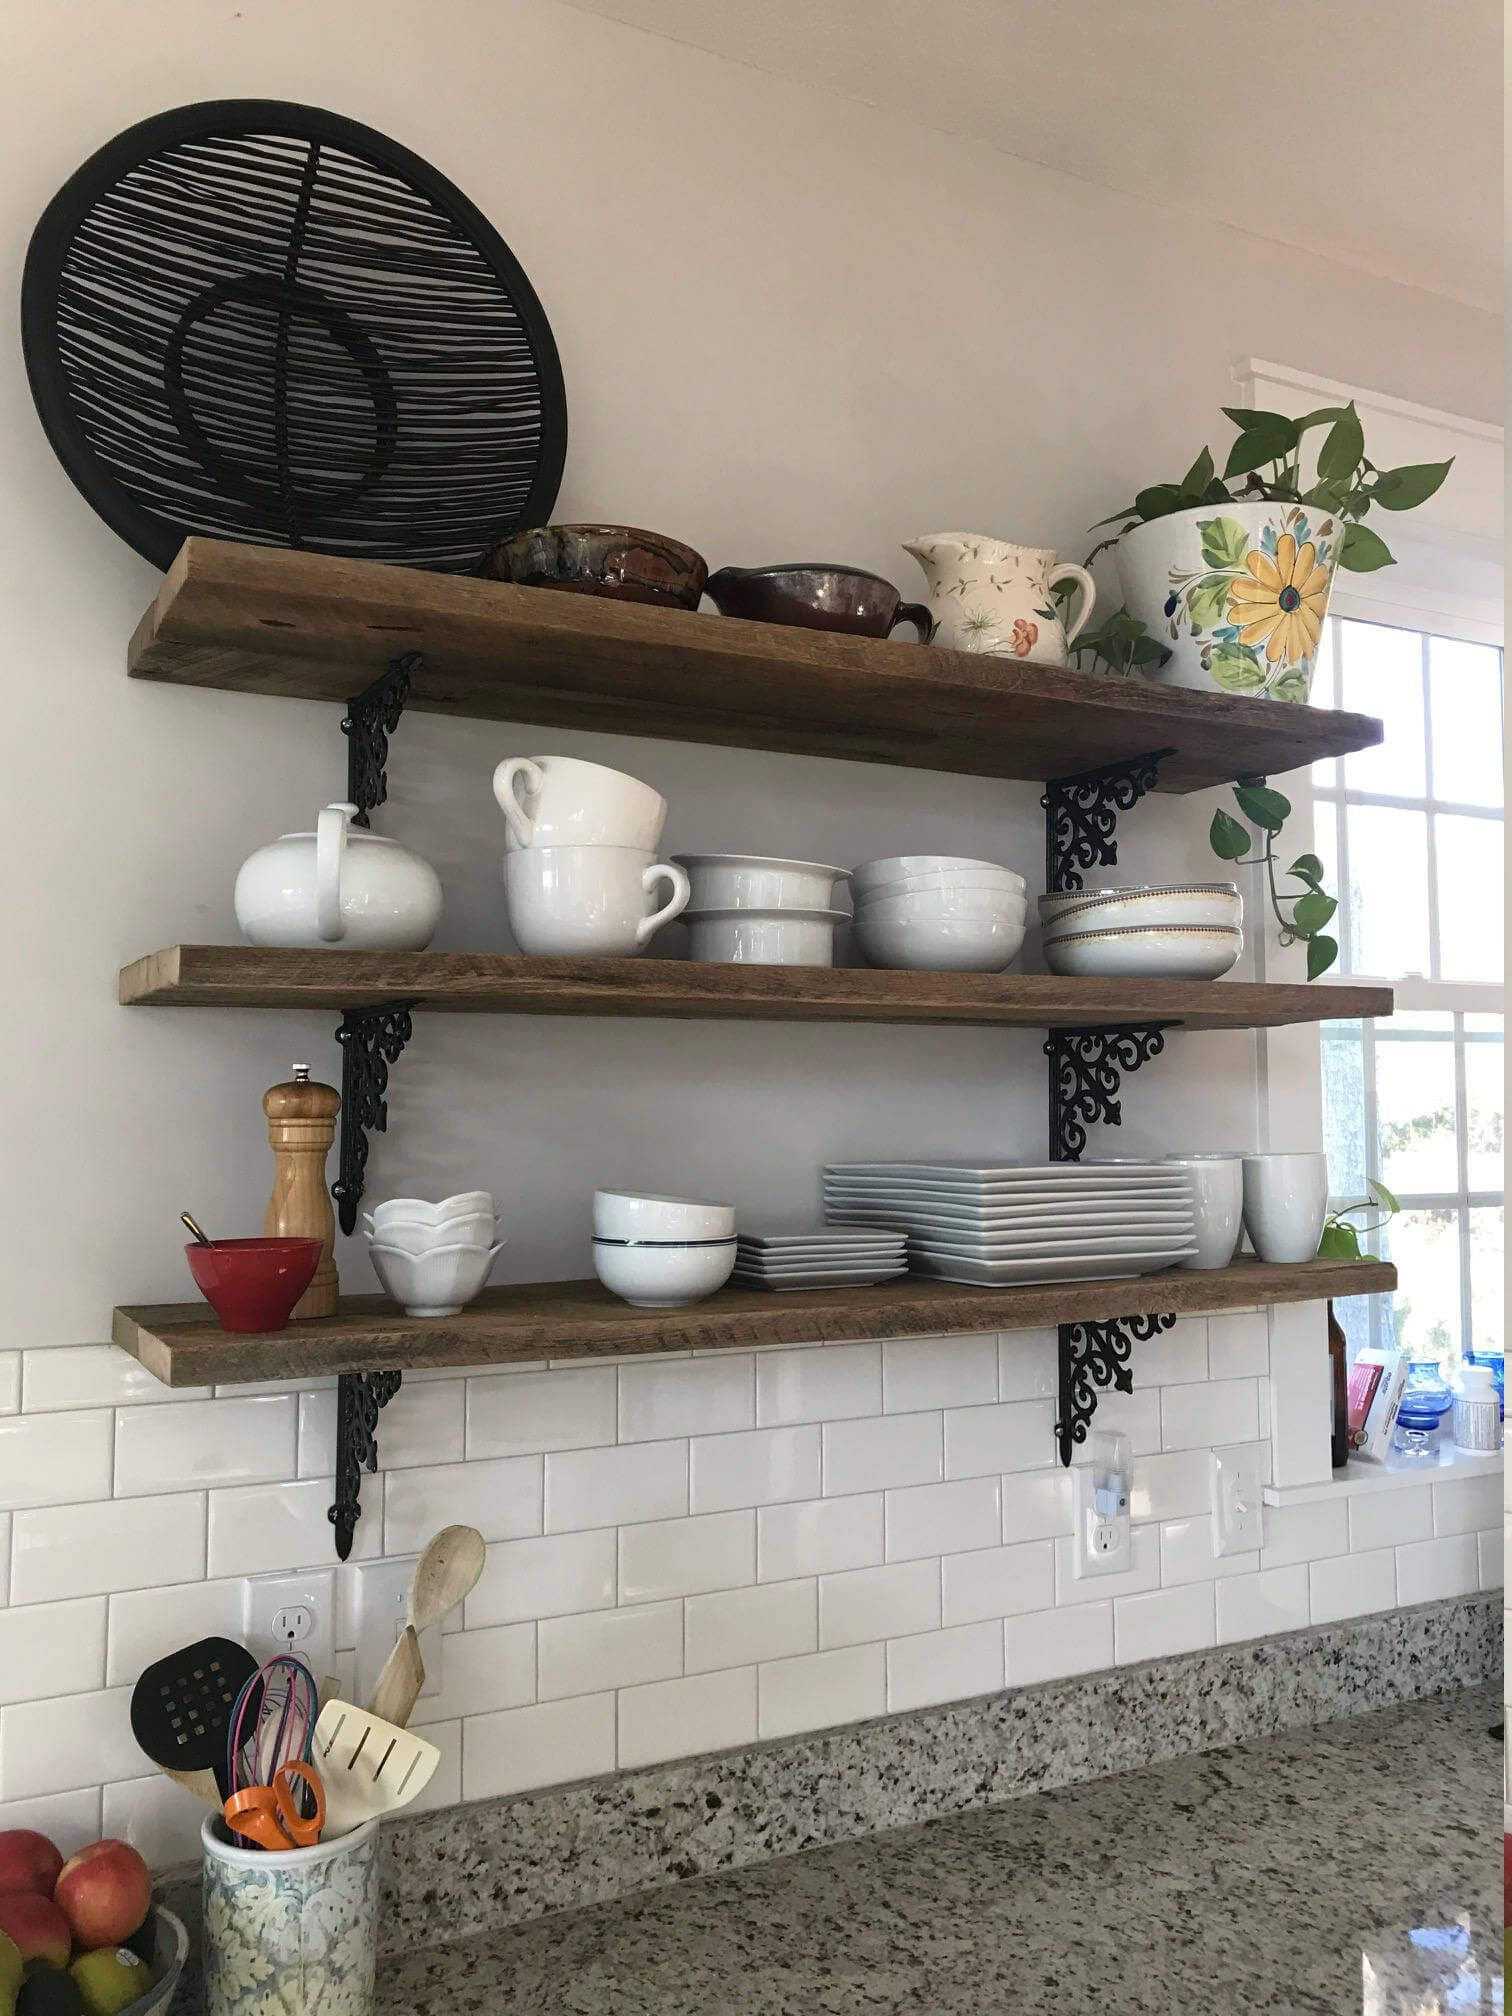 3 36 Inch Barn Wood Farmhouse Kitchen Shelves Reclaimed Industrial Hanging Shelf Display Wall Art Interior Design Beachhousedreamshomeobx Kitchen Remodel Barnwood Shelves Kitchen Remodel Cost